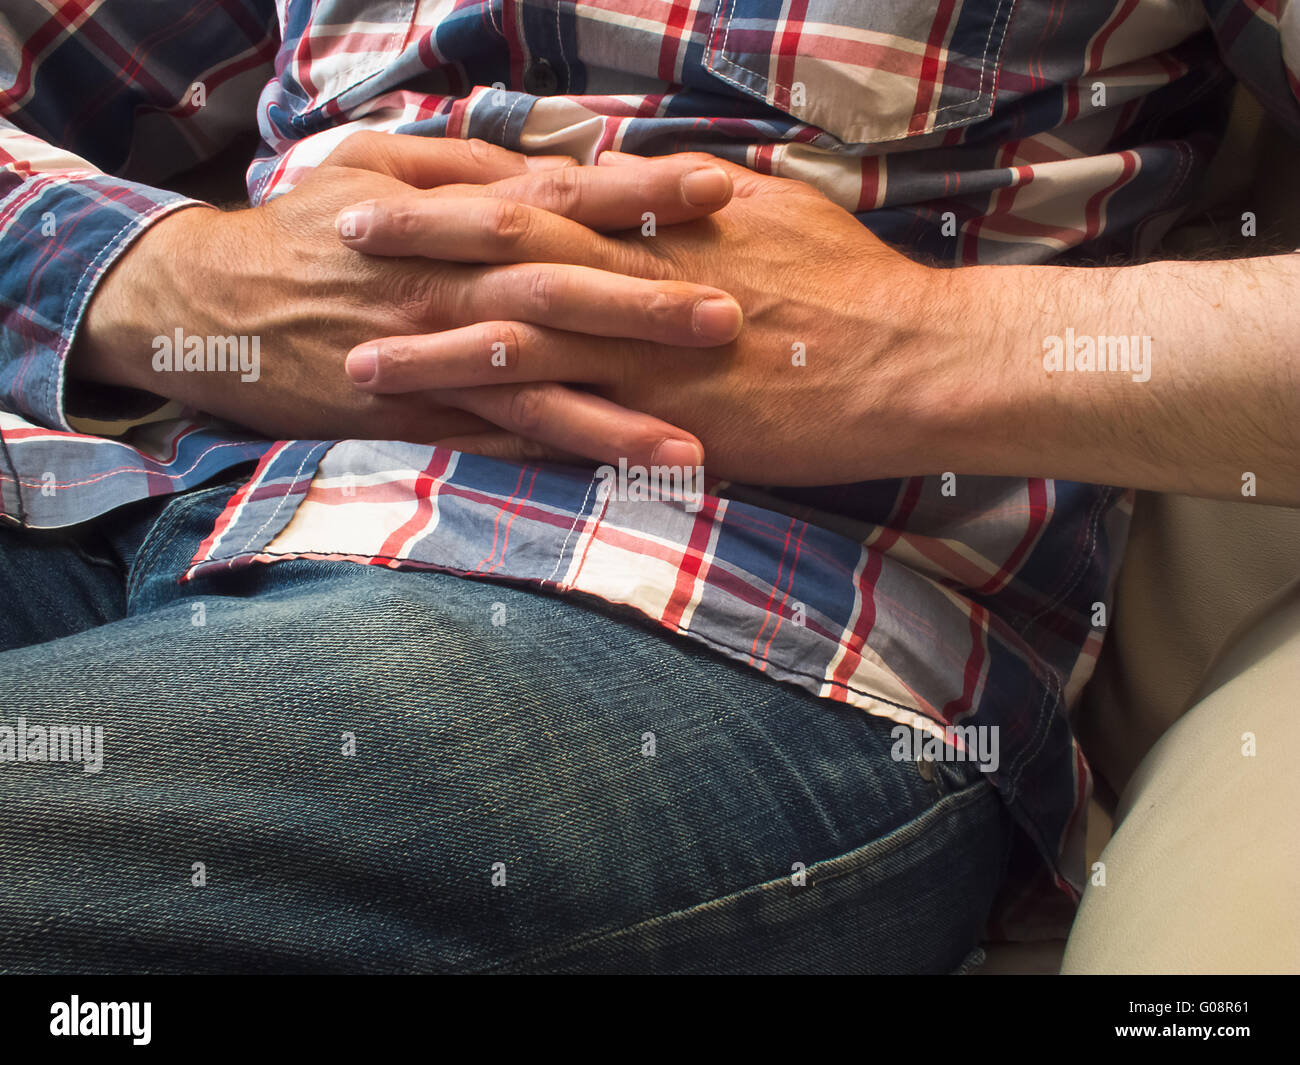 folded hands - Stock Image